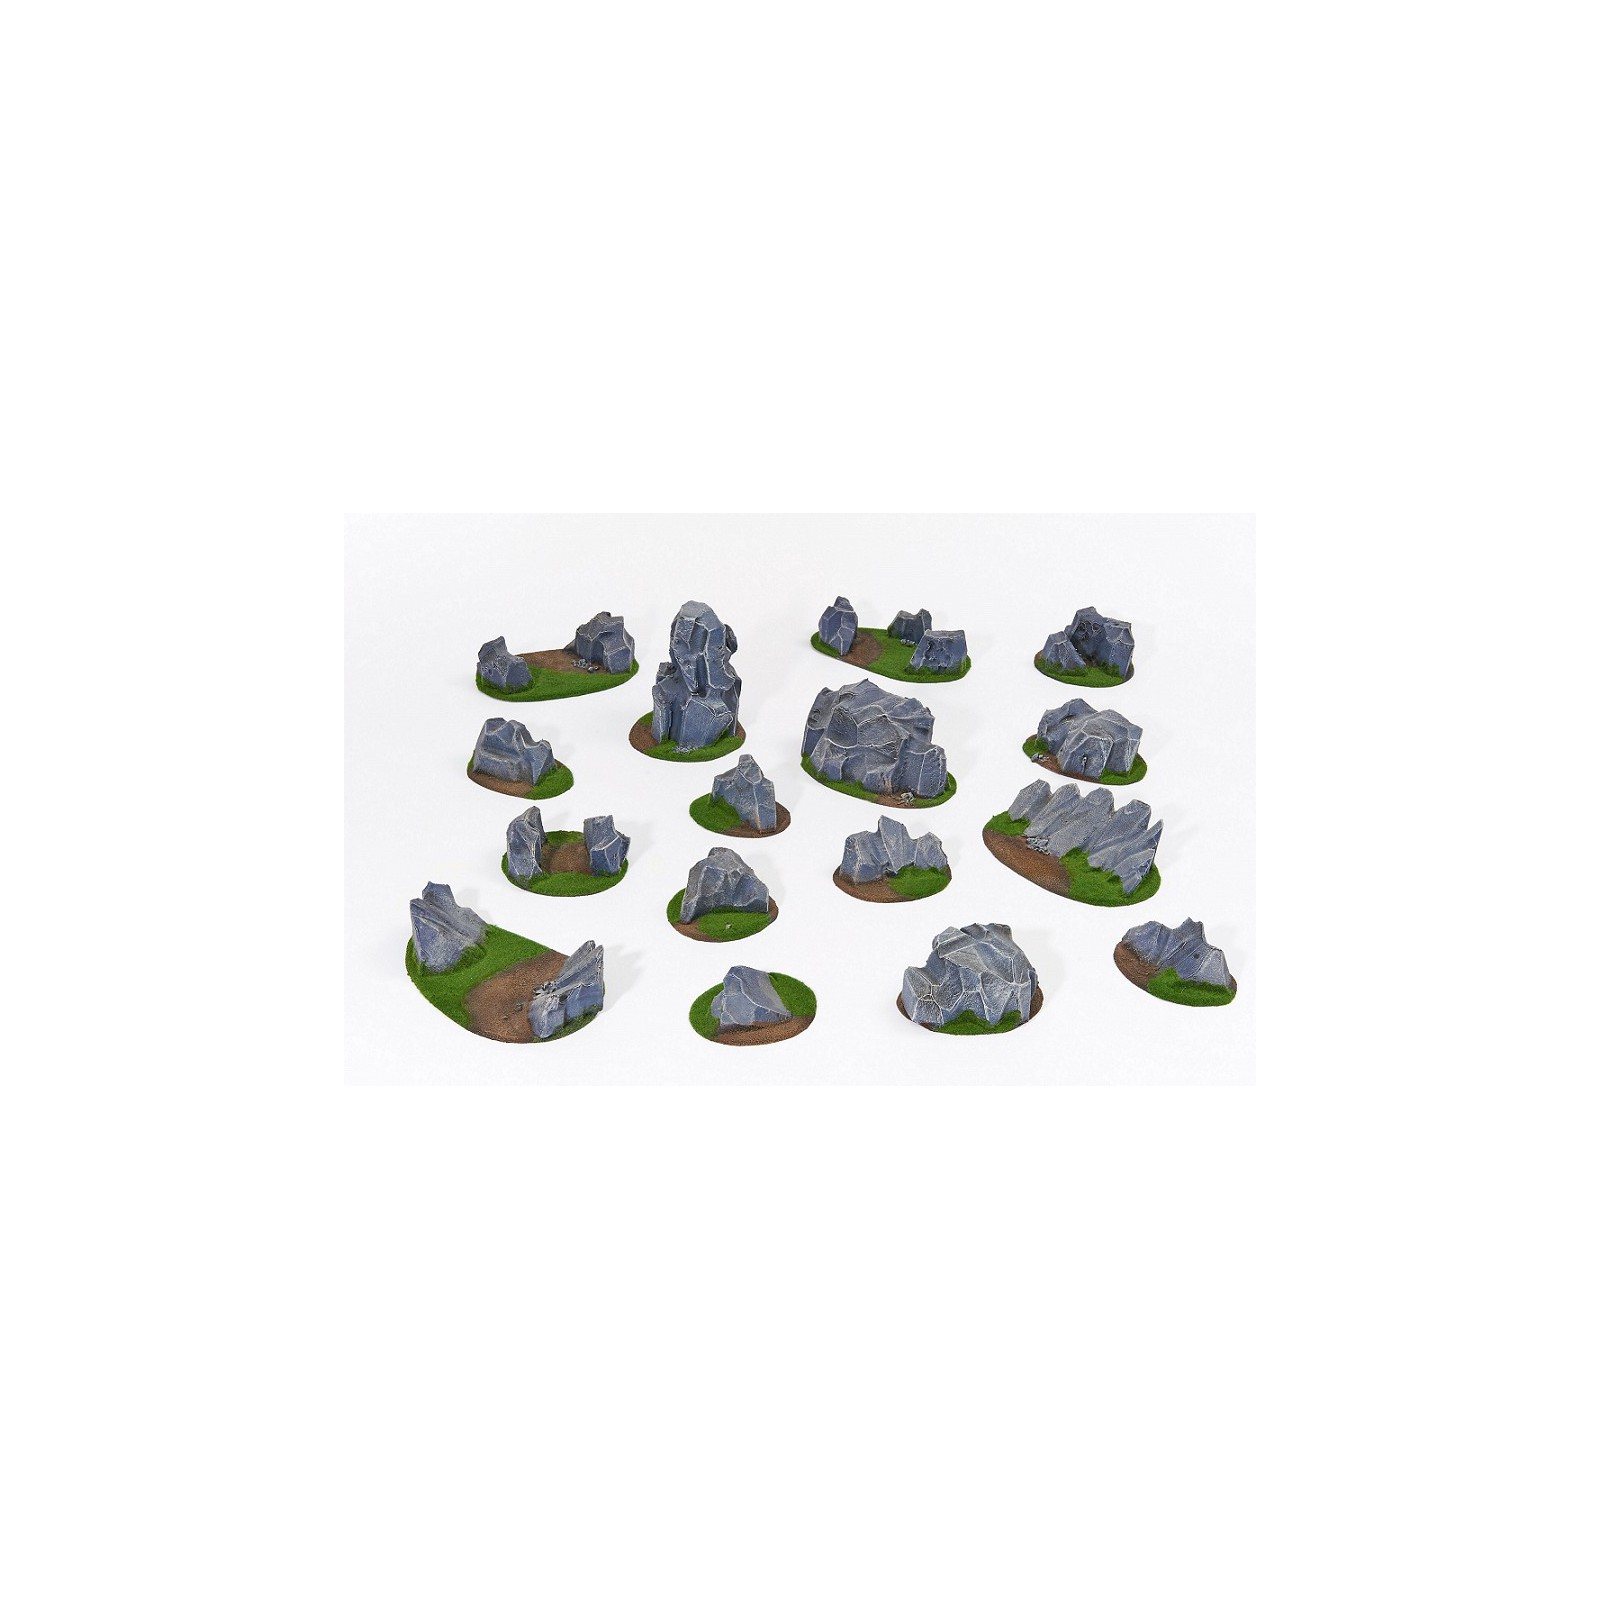 ROCKSY Battlefield Set - 16 elements